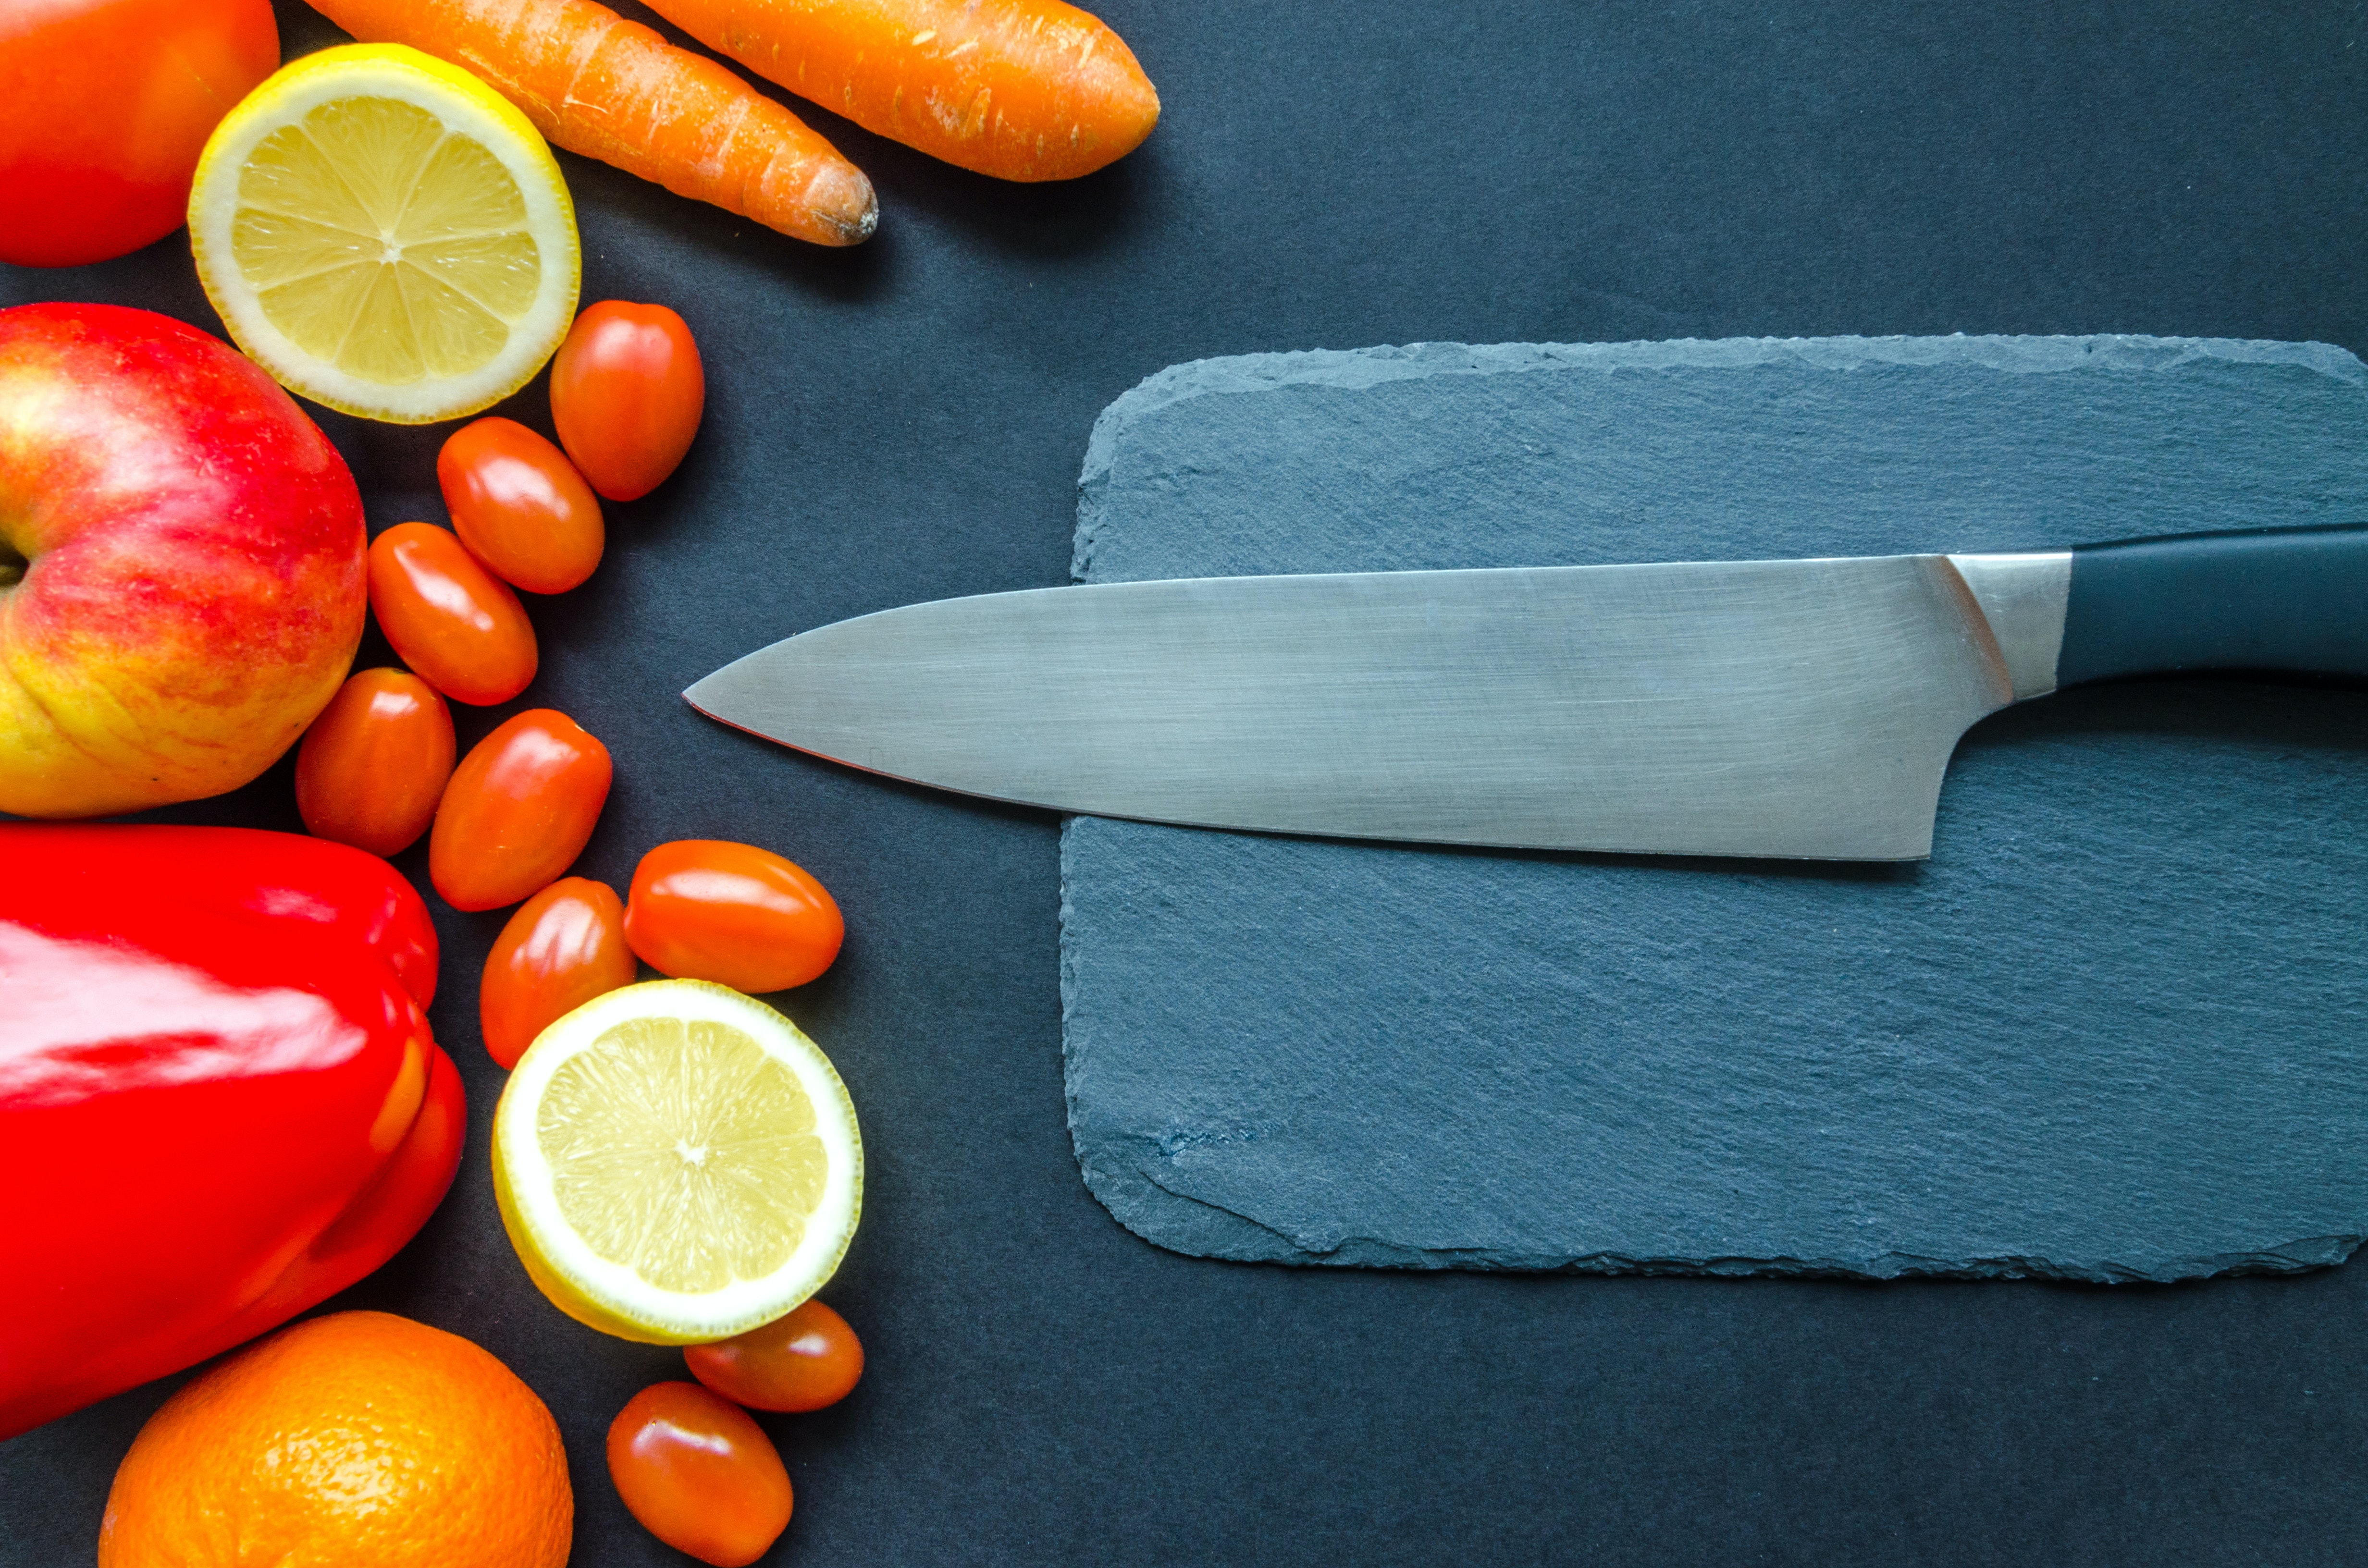 Black Kitchen Knife With Fruits and Vegetable on Table · Free Stock ...